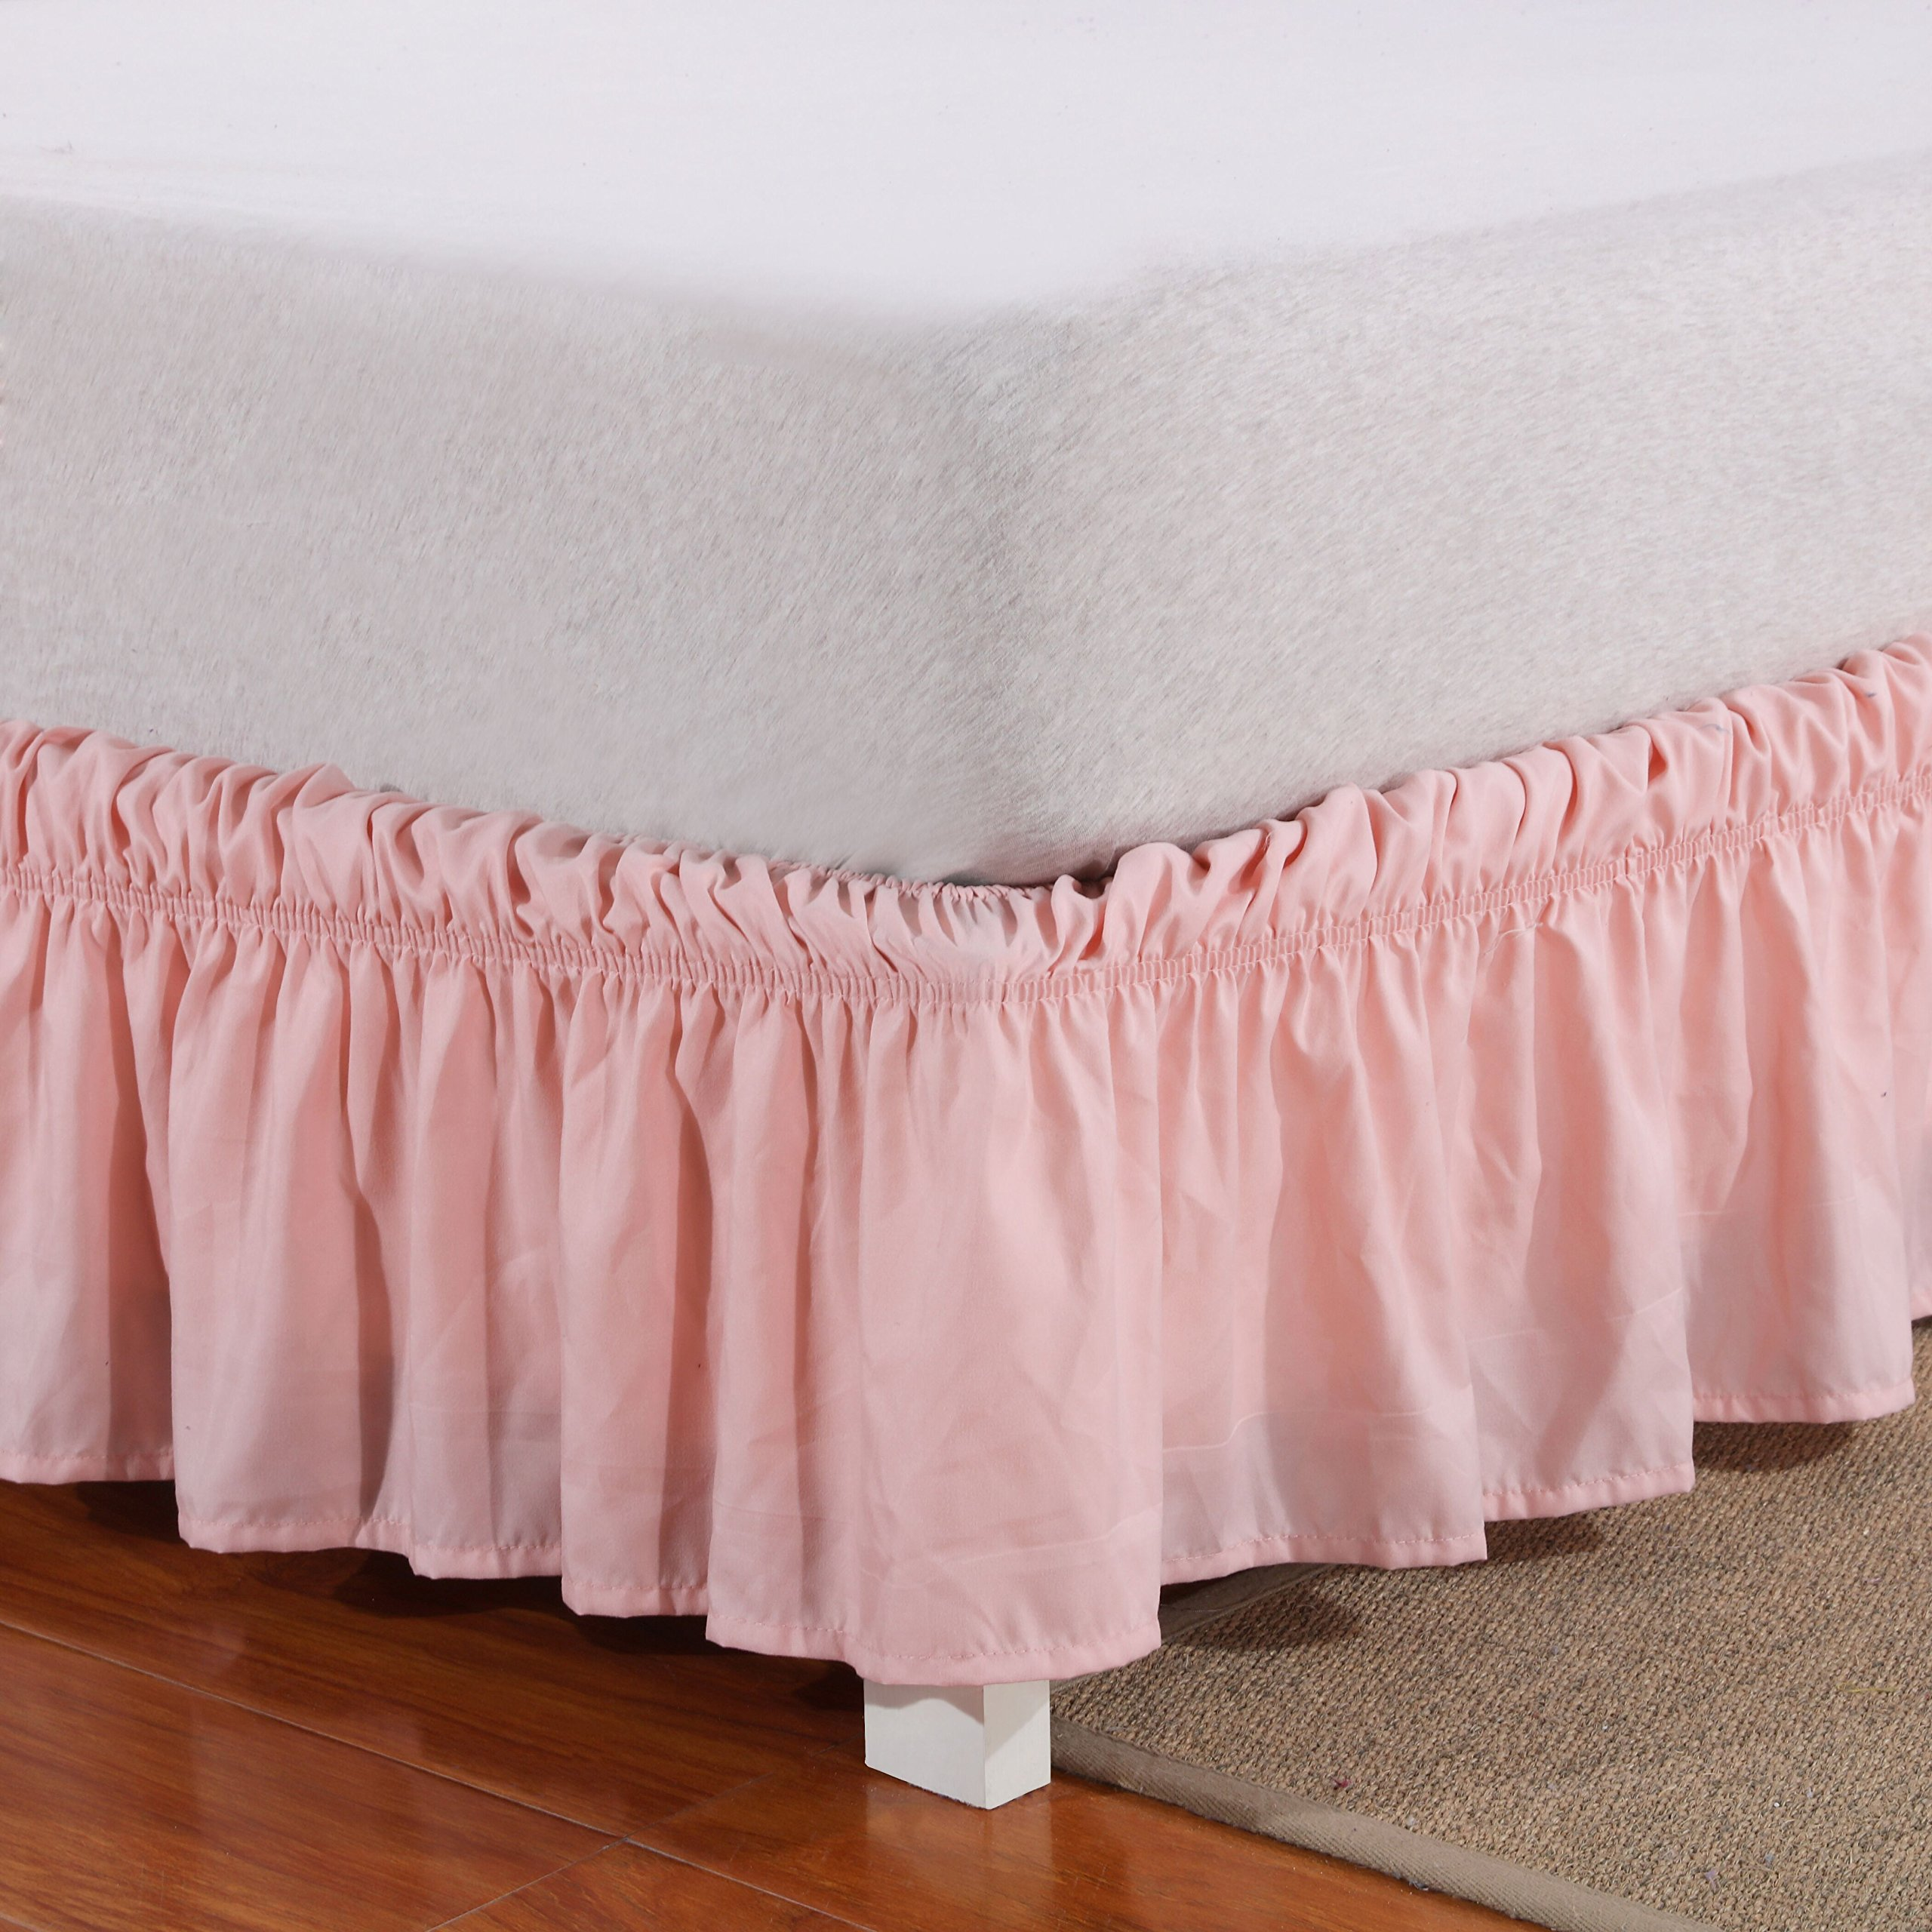 Wrap Around Bed Skirt Elastic Dust Ruffle Easy Fit Wrinkle and Fade Resistant Solid Color Queen, Pink